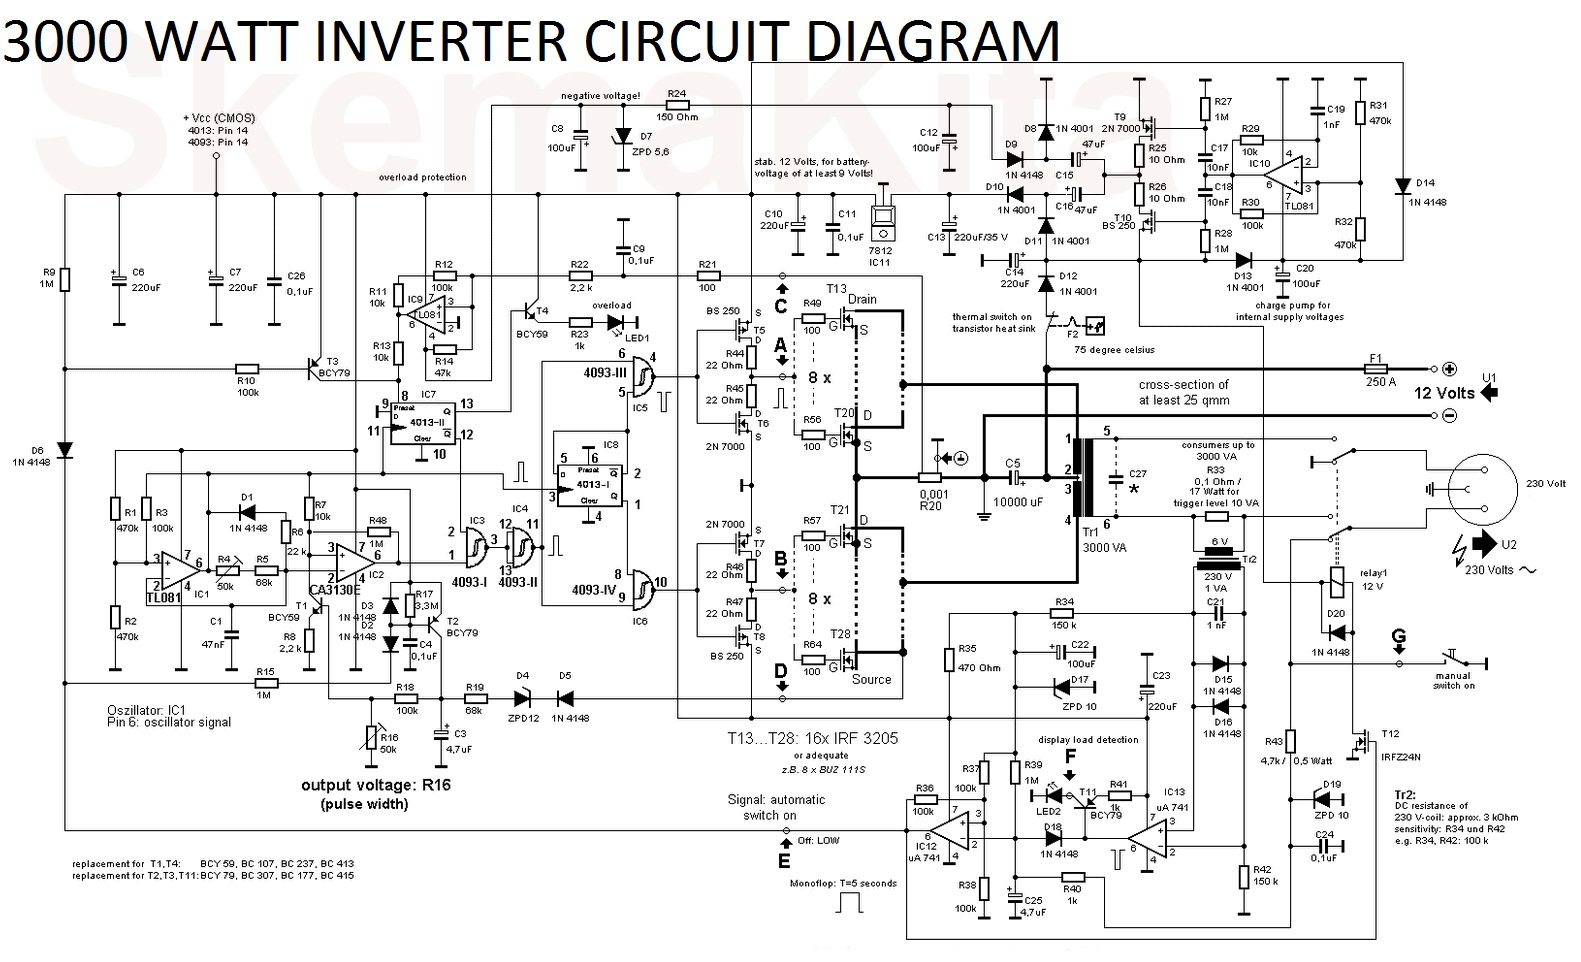 3000 watt inverter circuit diagram electronic circuit rh elcircuit com circuit diagram of inverter 12v to 220v circuit diagram of inverter welding machine